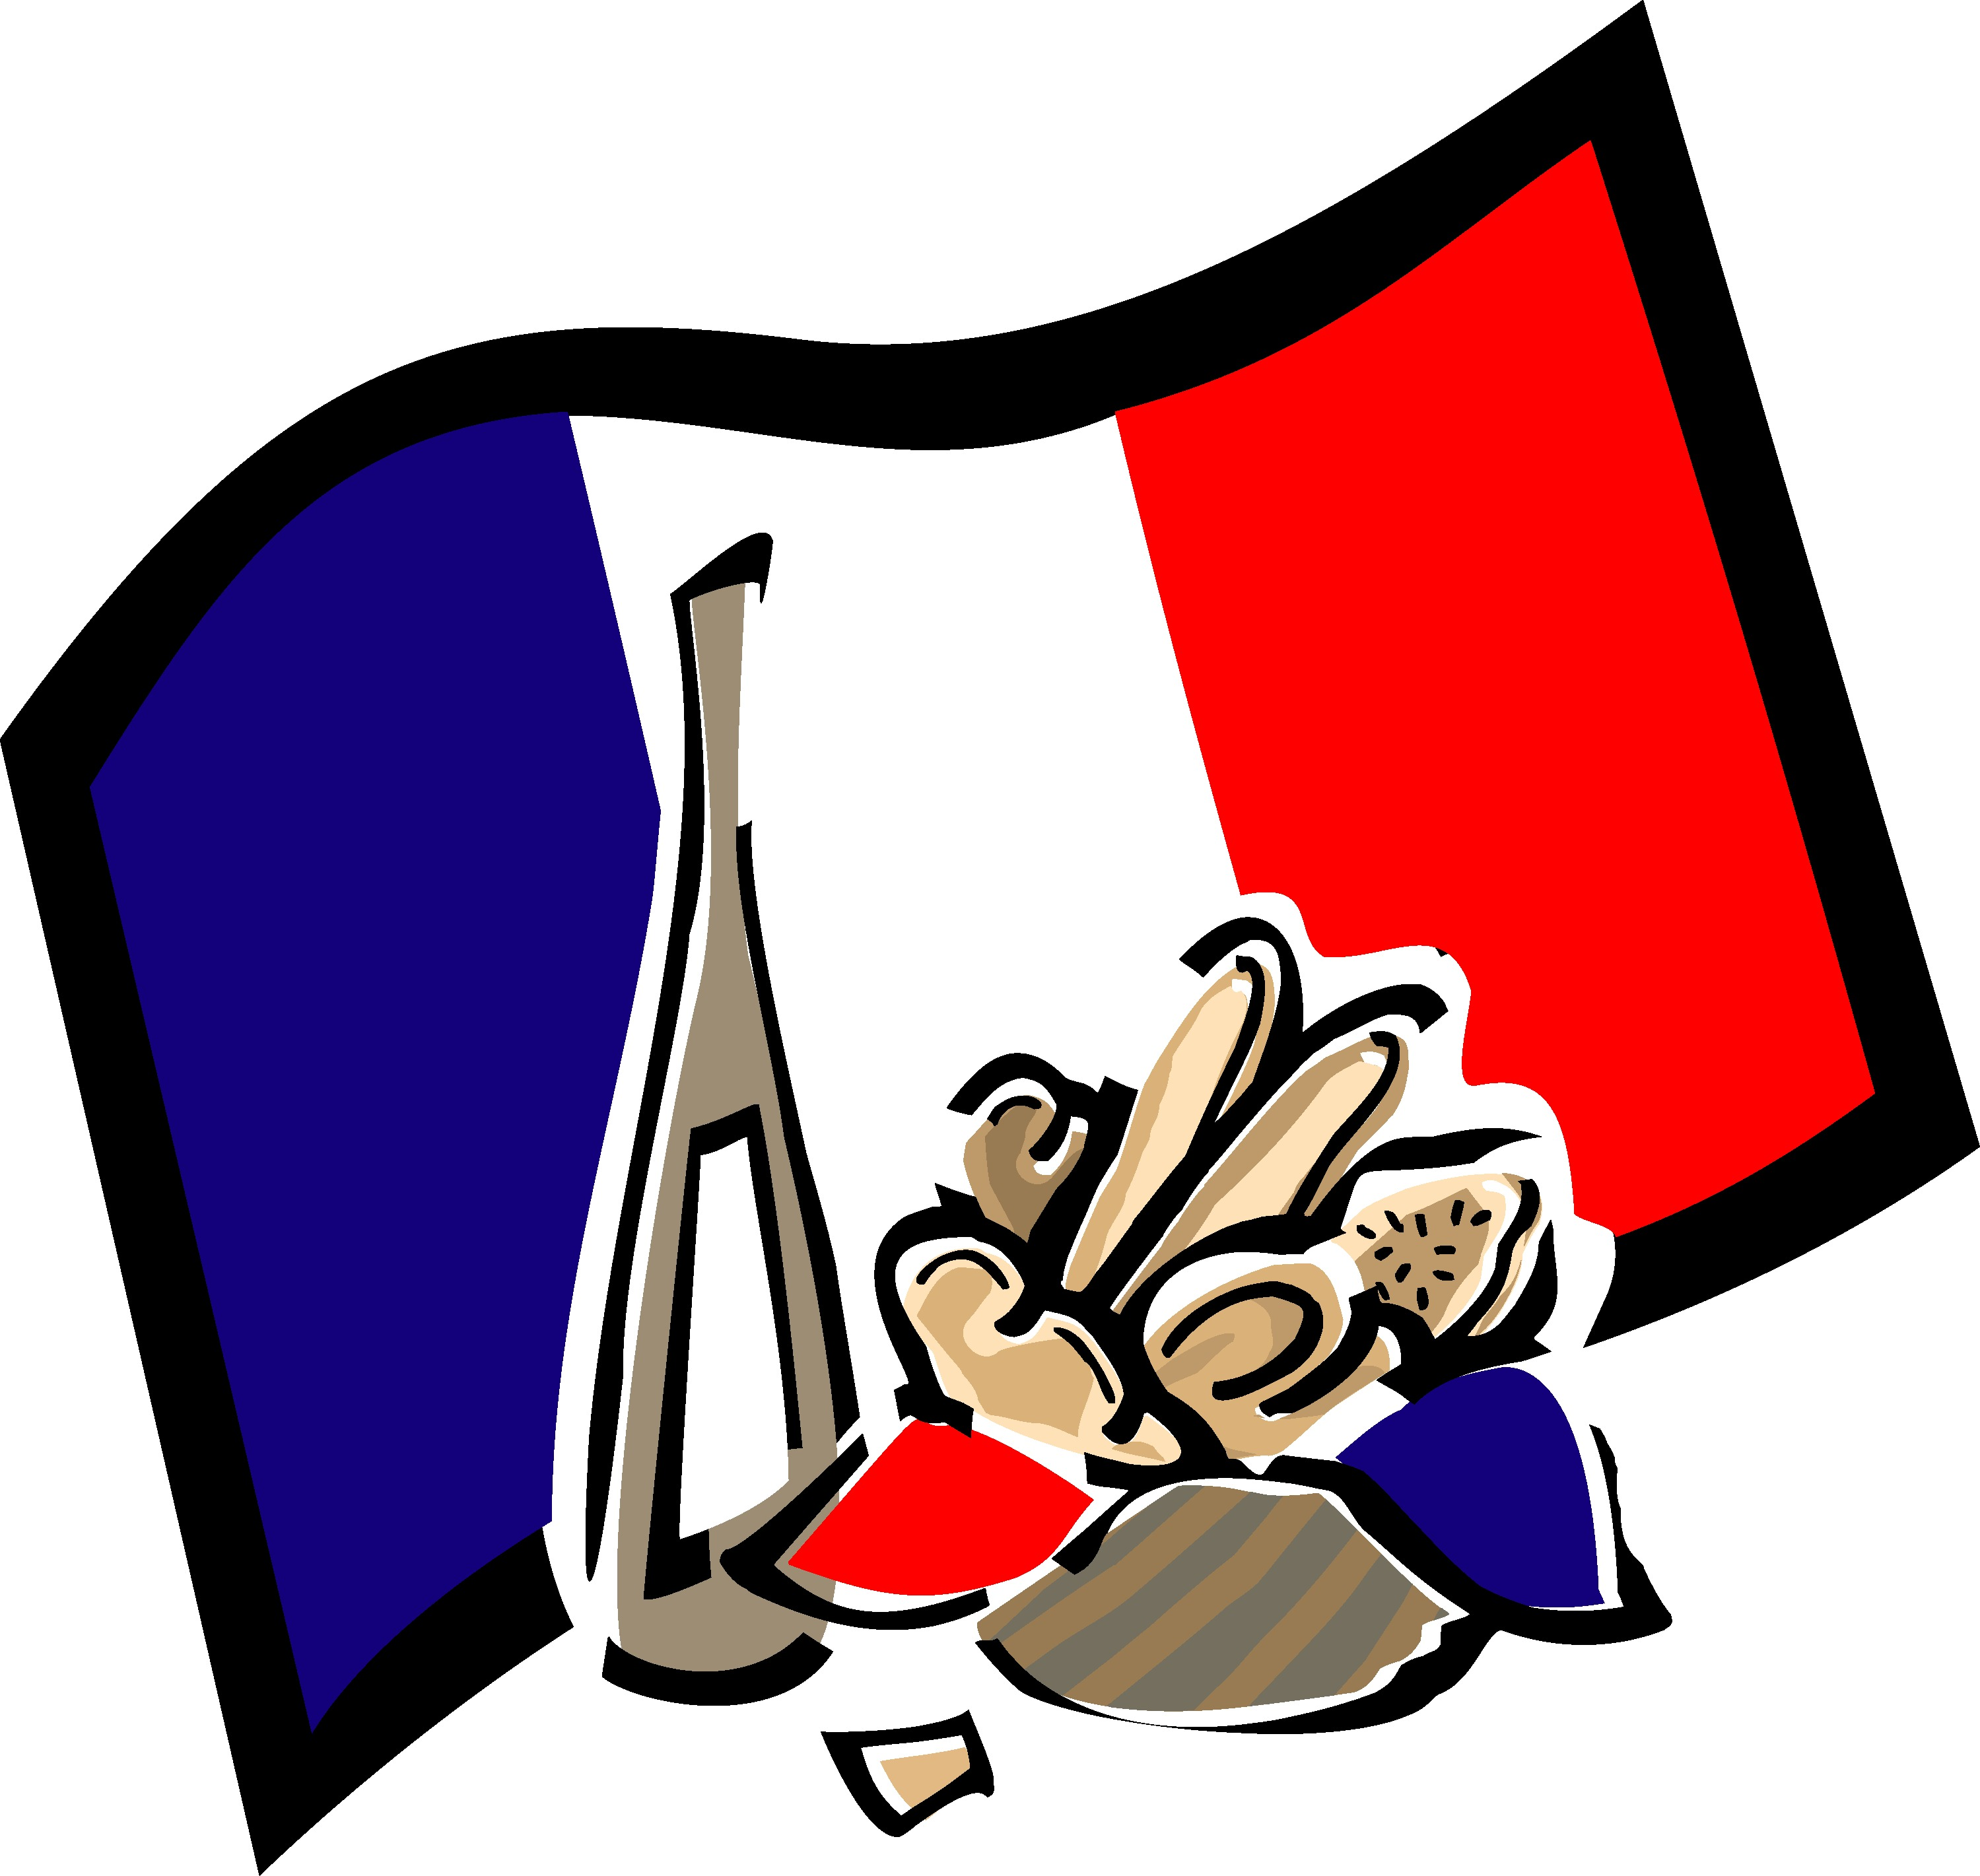 france clipart images - photo #9